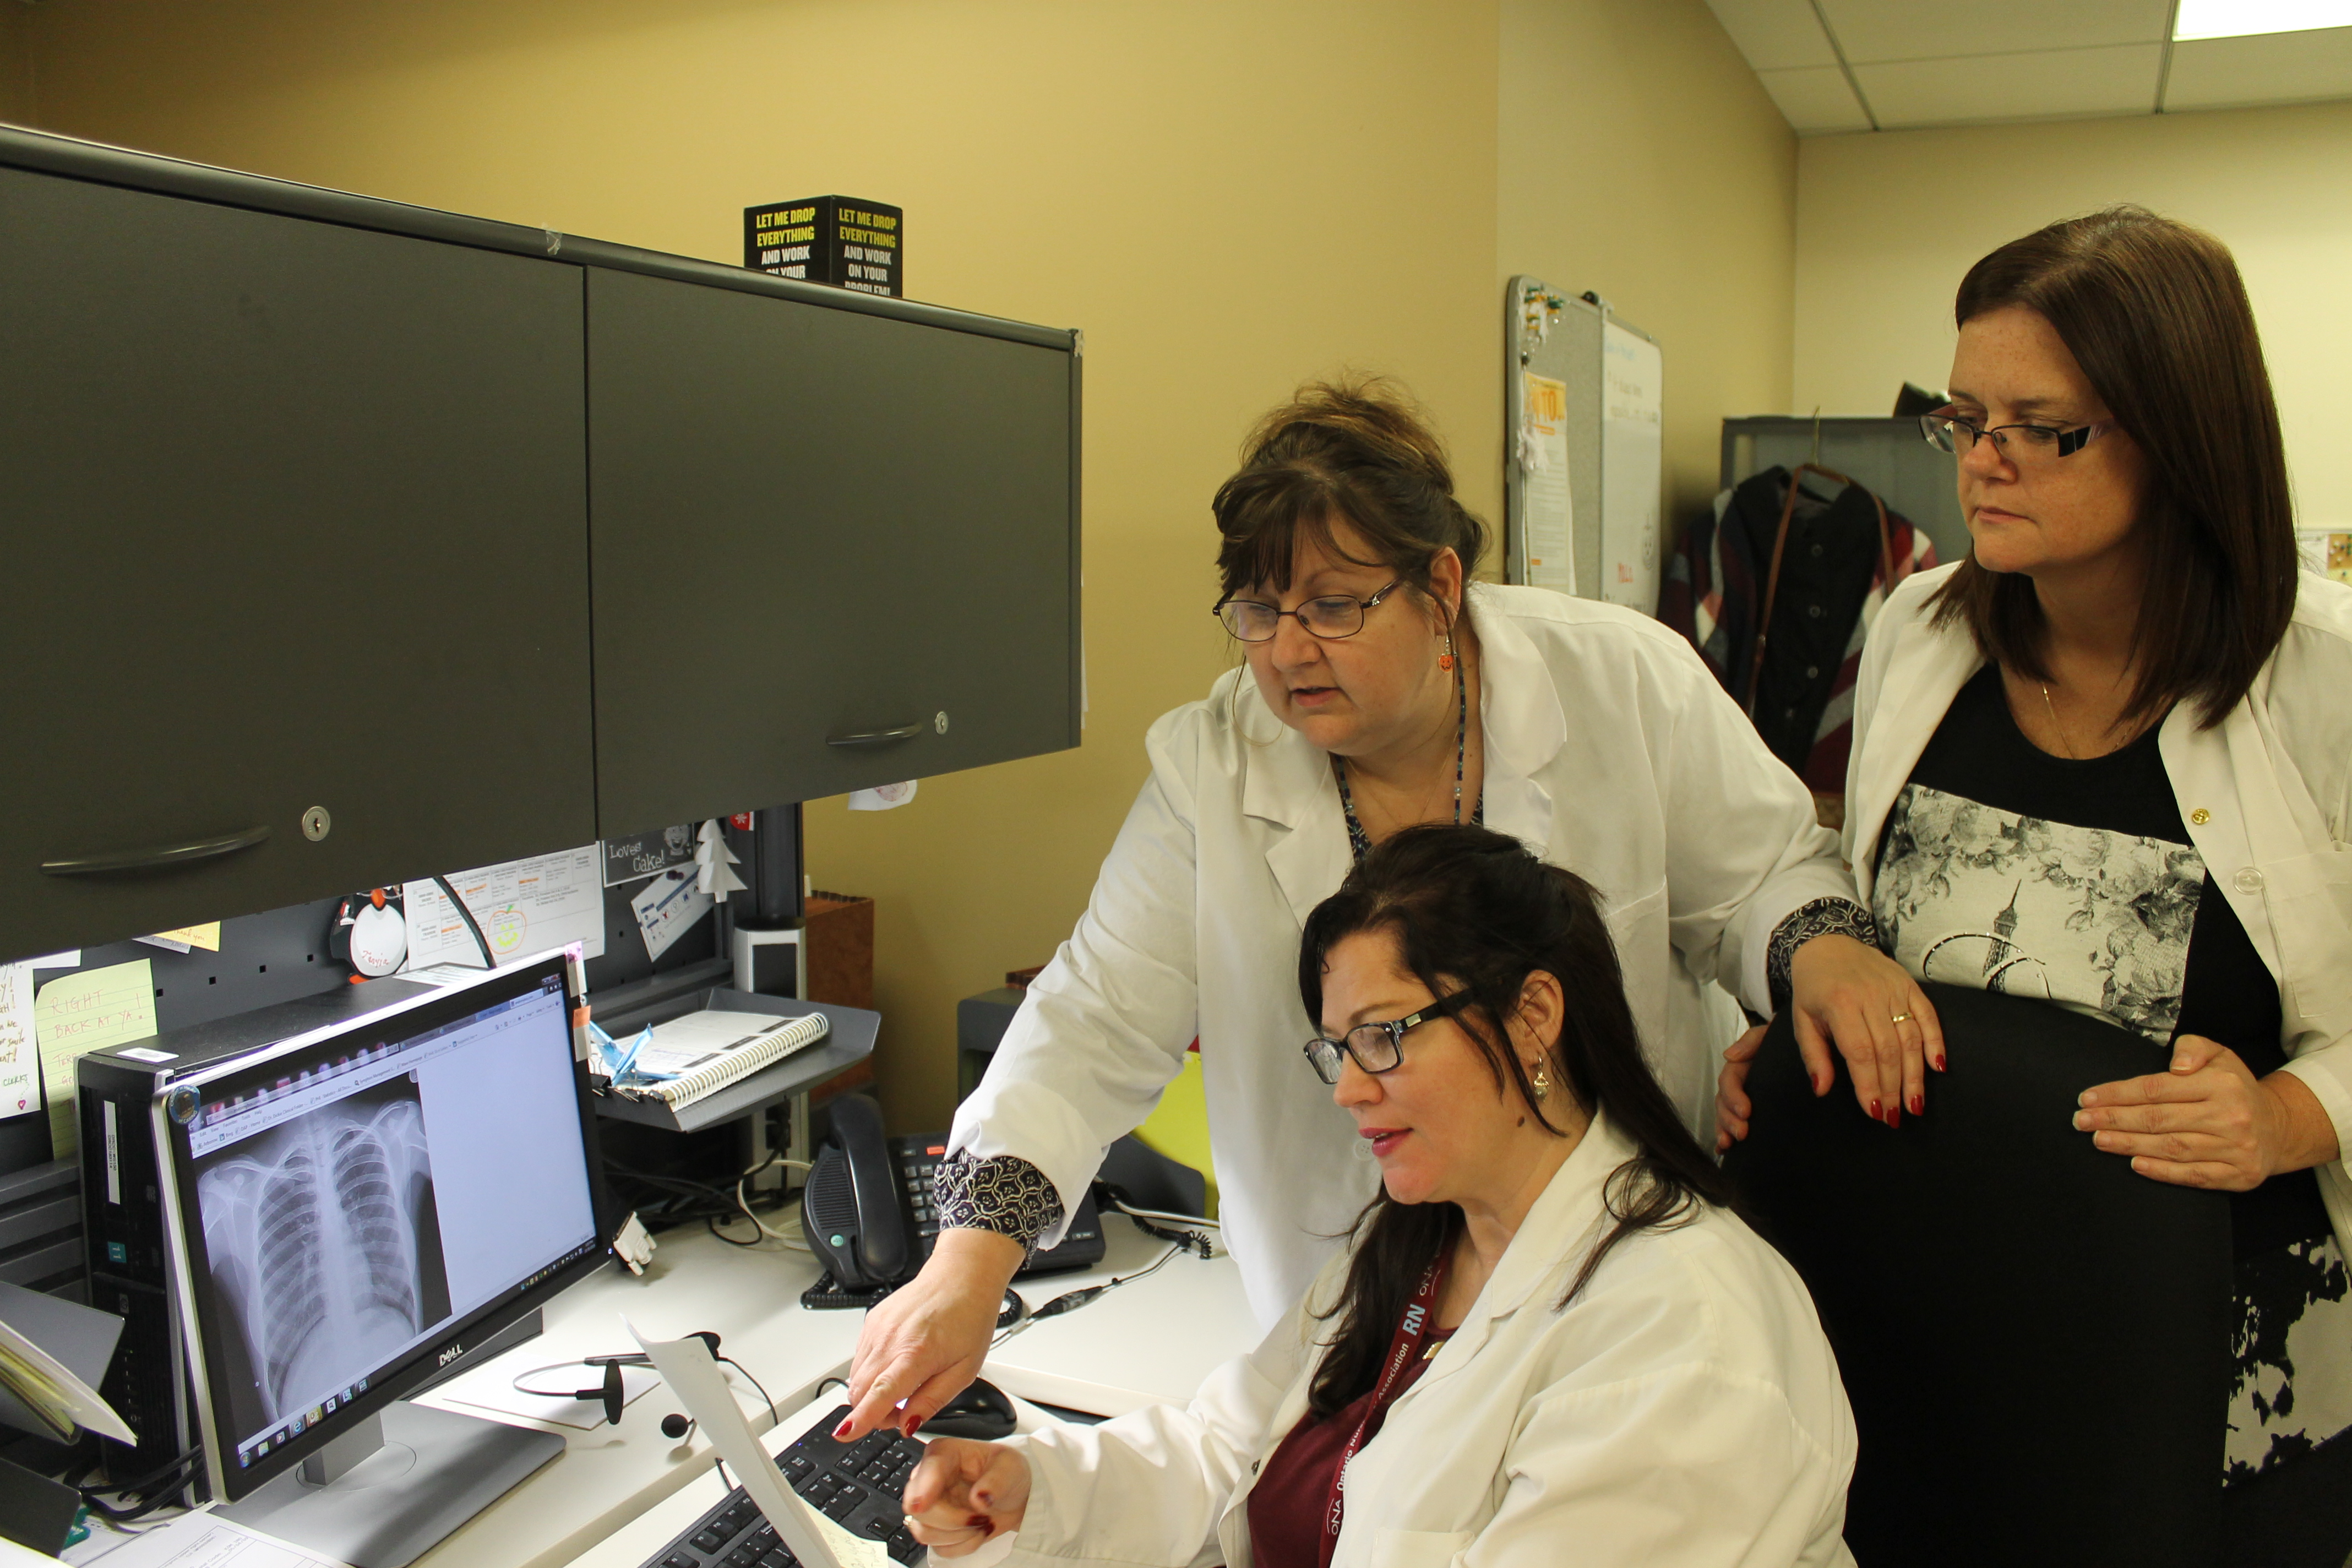 nurses working at a computer